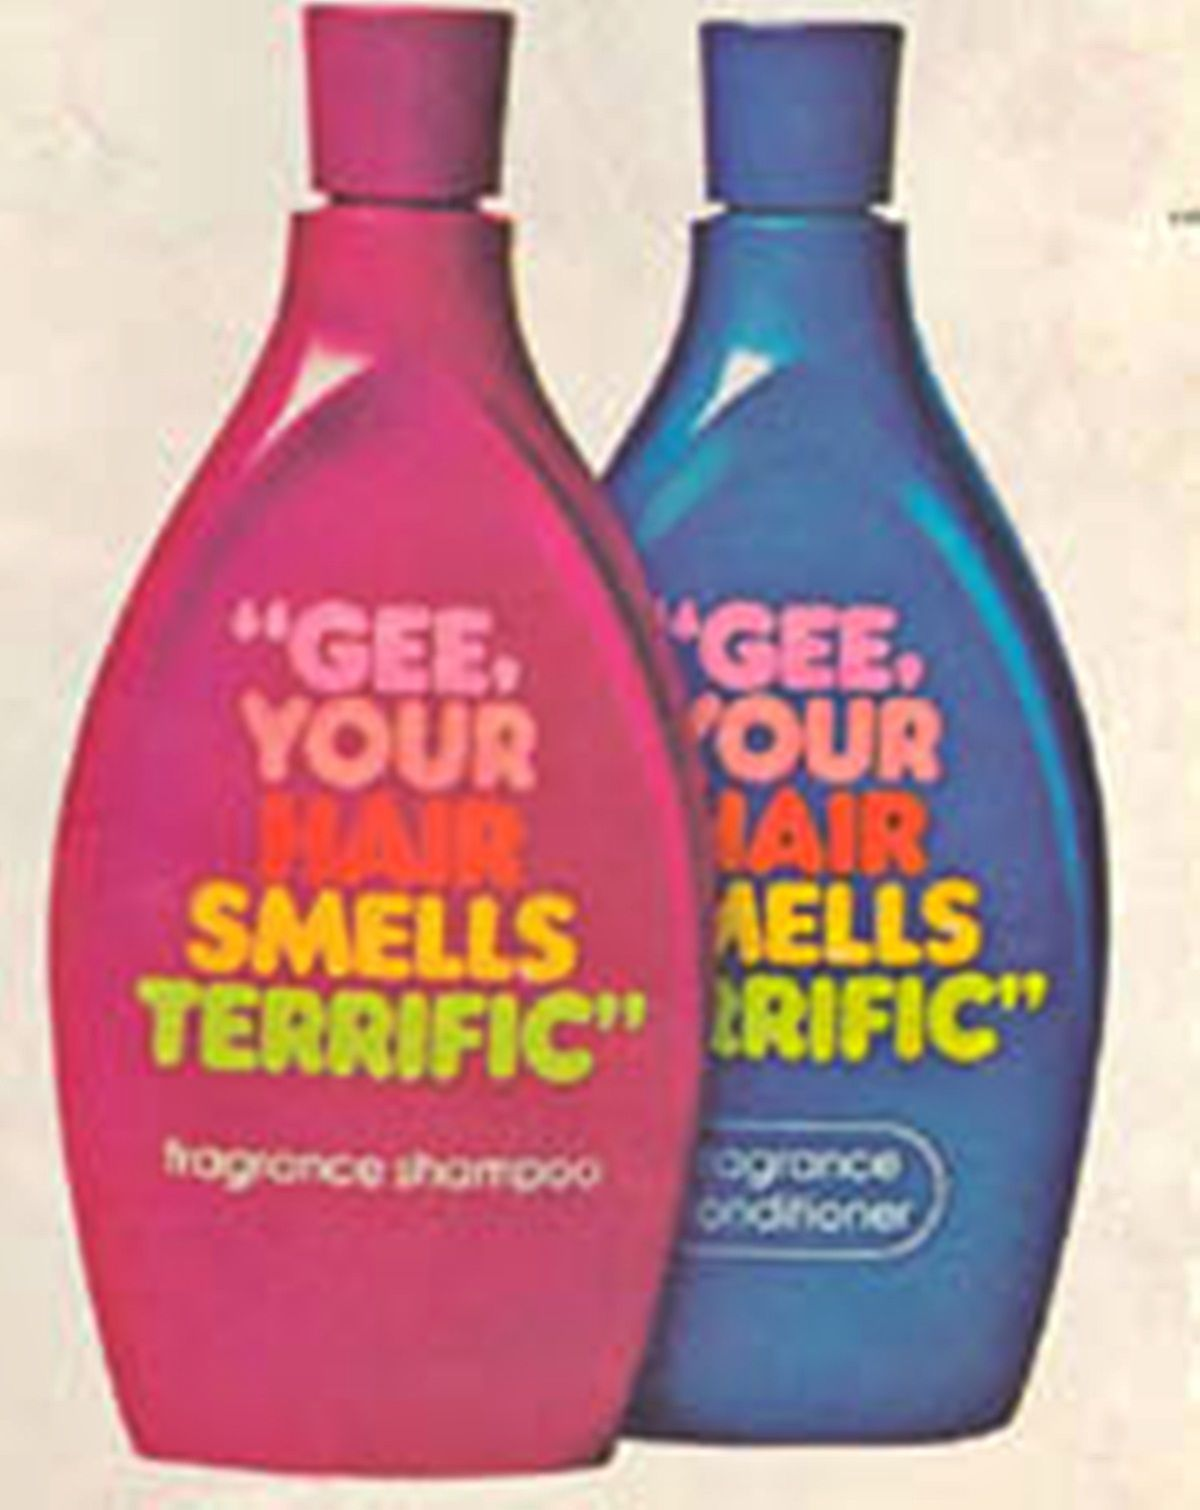 Gee your hair smells terrific fragrance oil